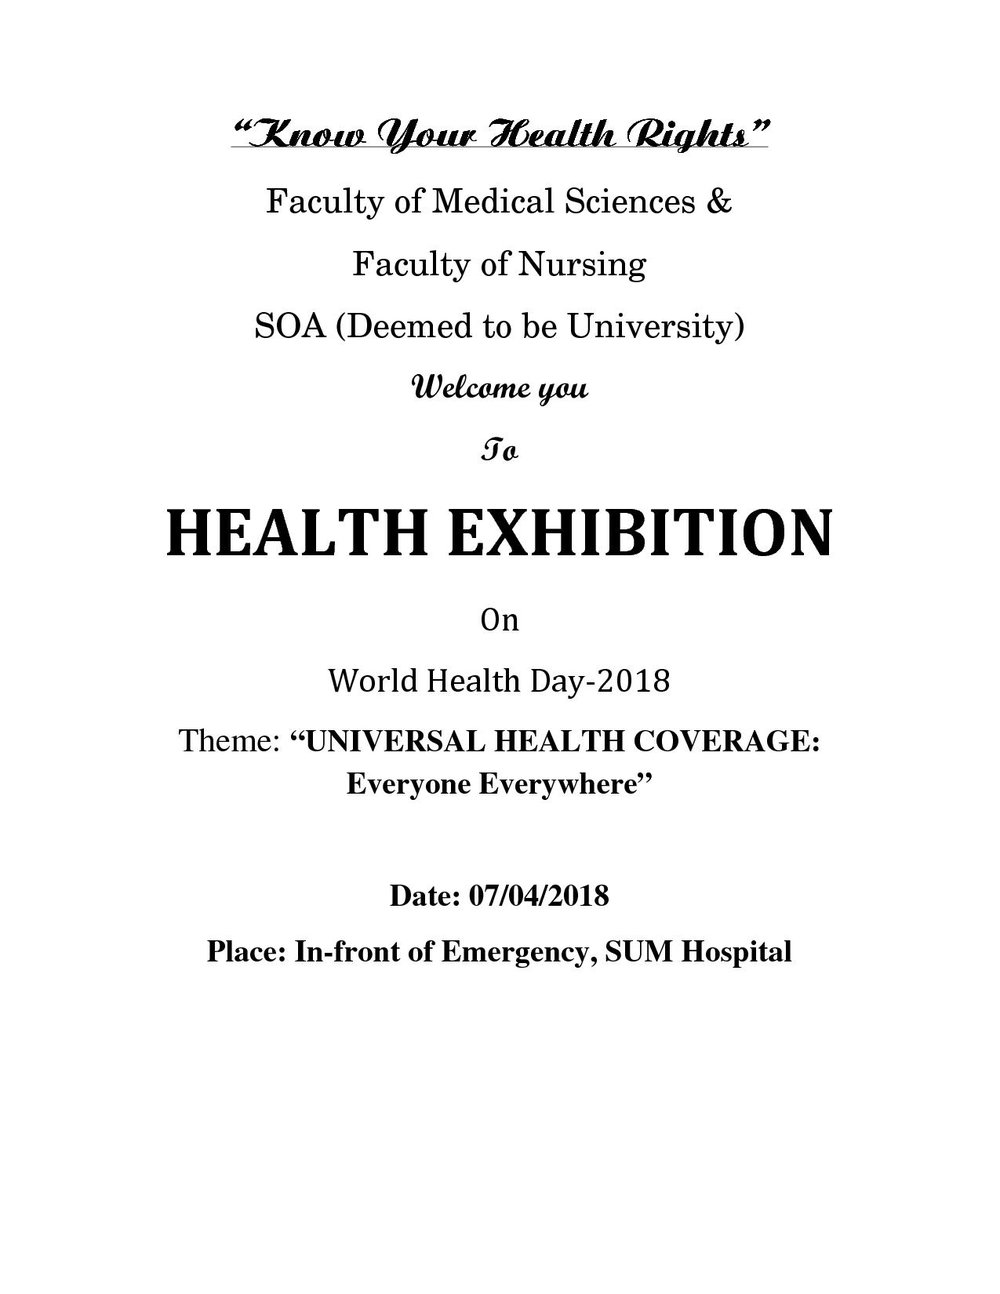 health exhibition1.jpg